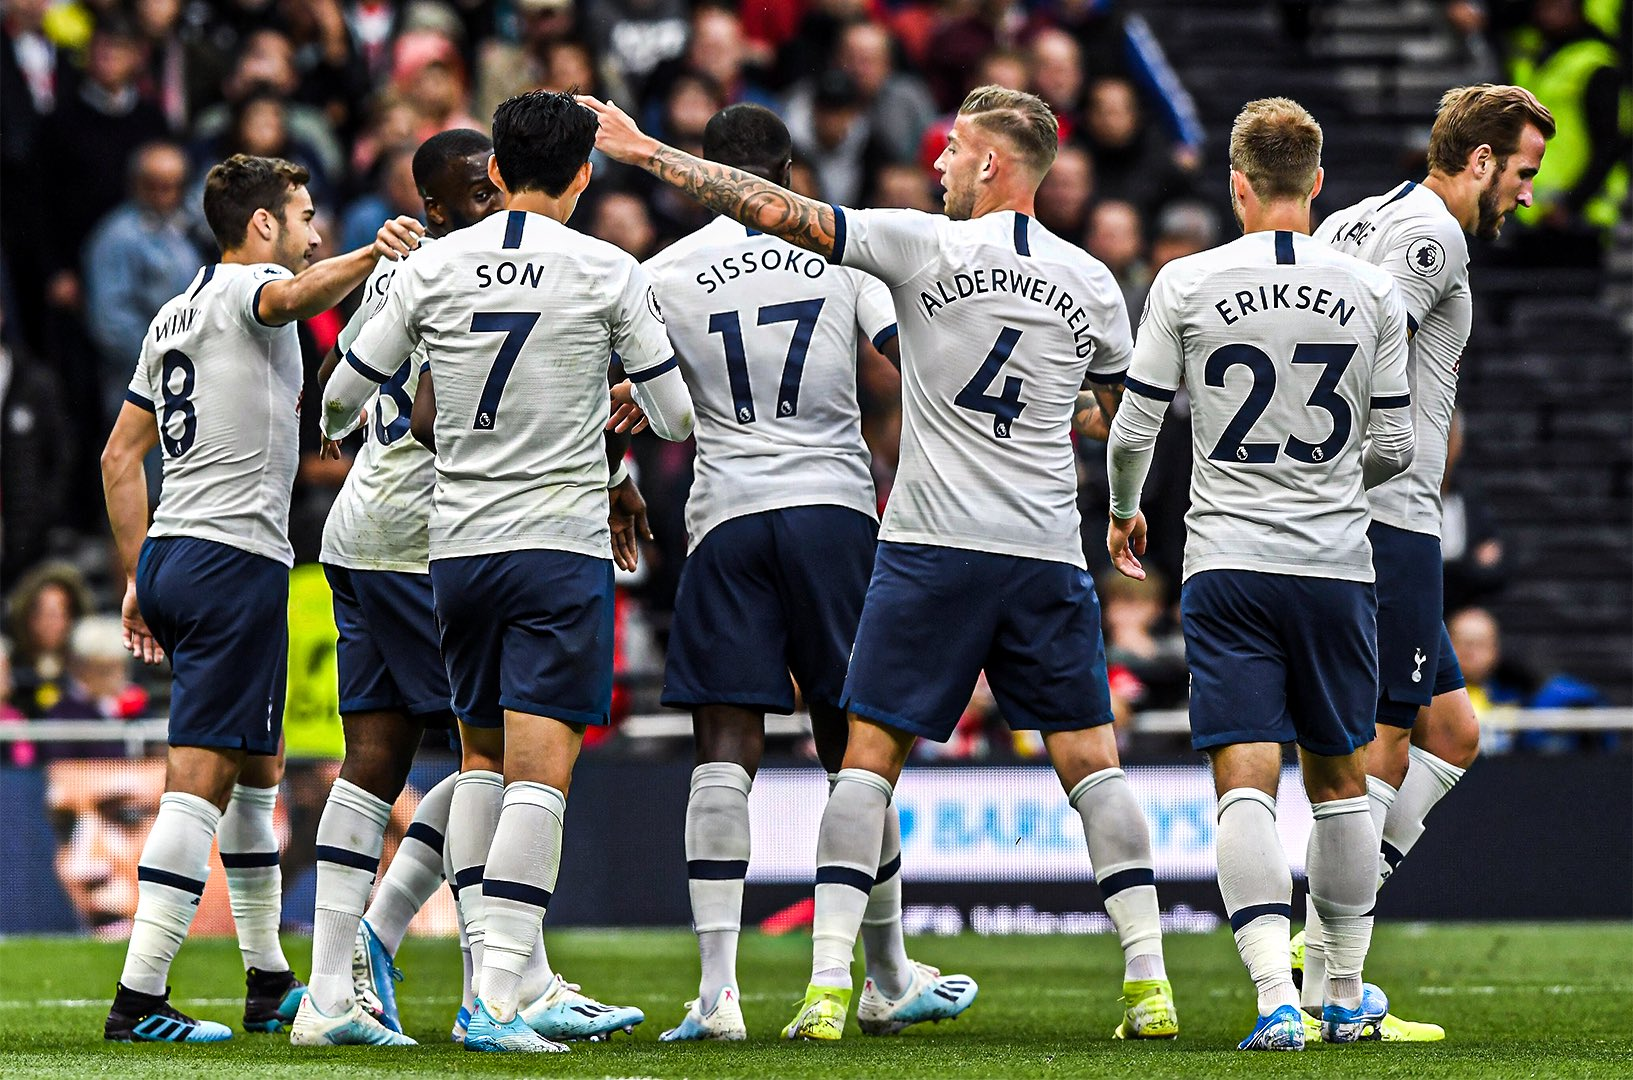 tottenham vs burnley fc - HD 1200×800